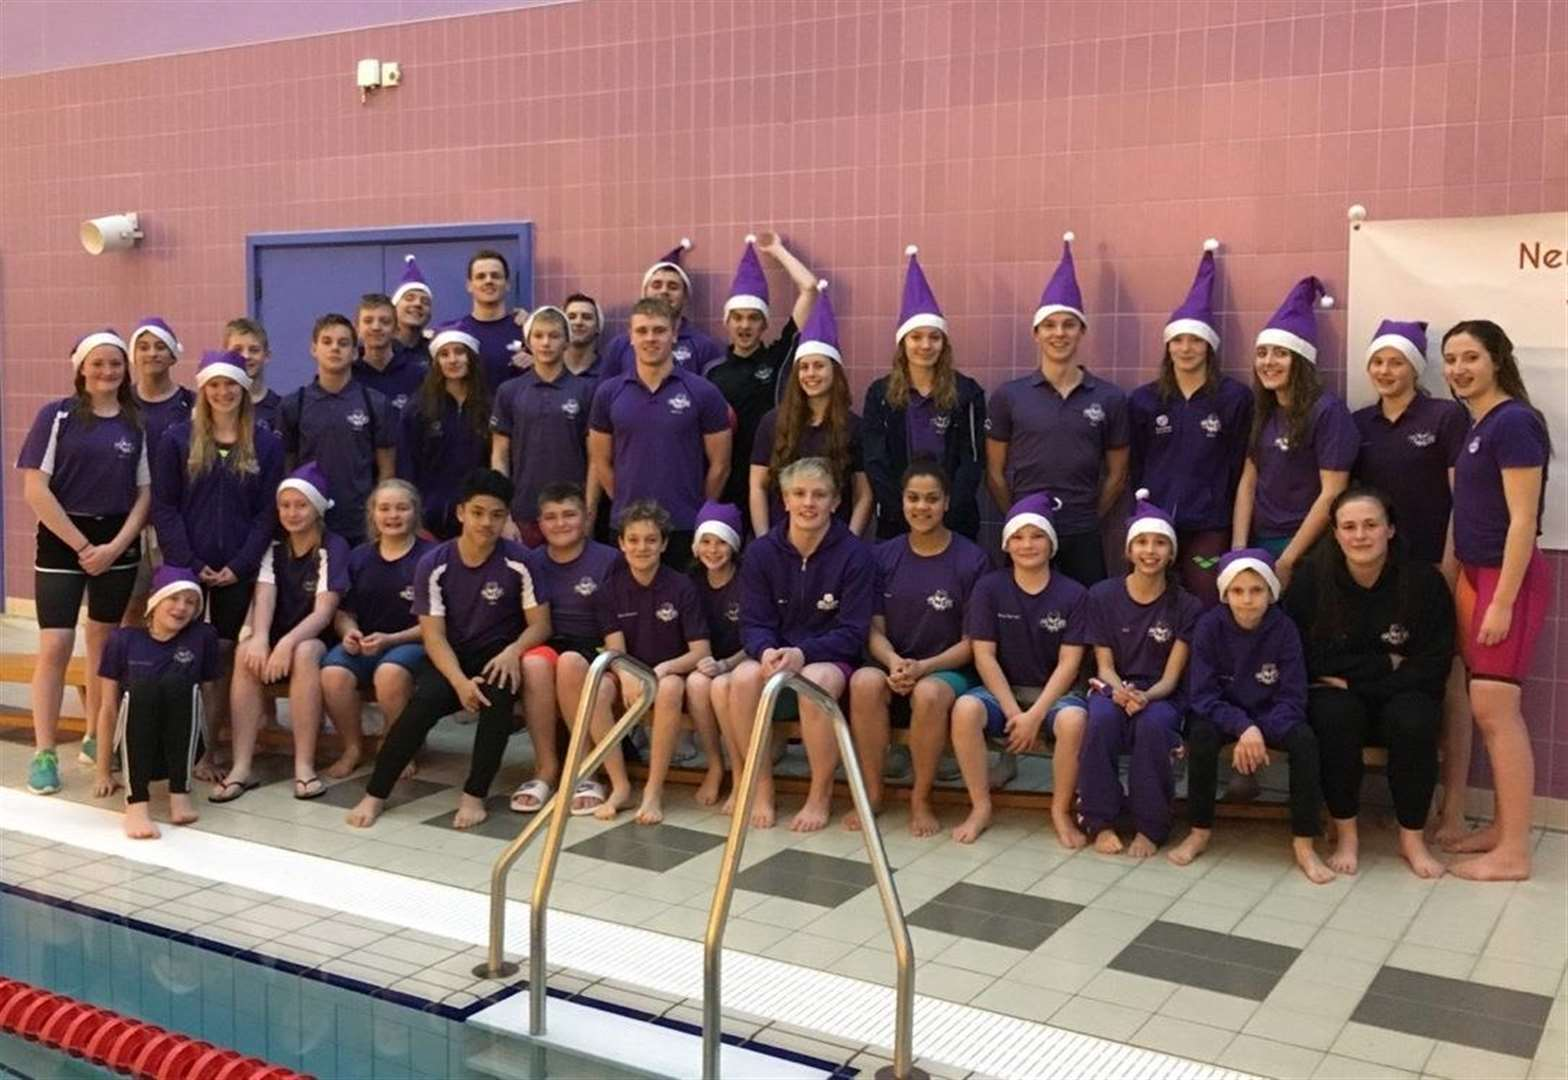 West Norfolk Swimming Club taste success at East Midlands National Arena League in Newmarket